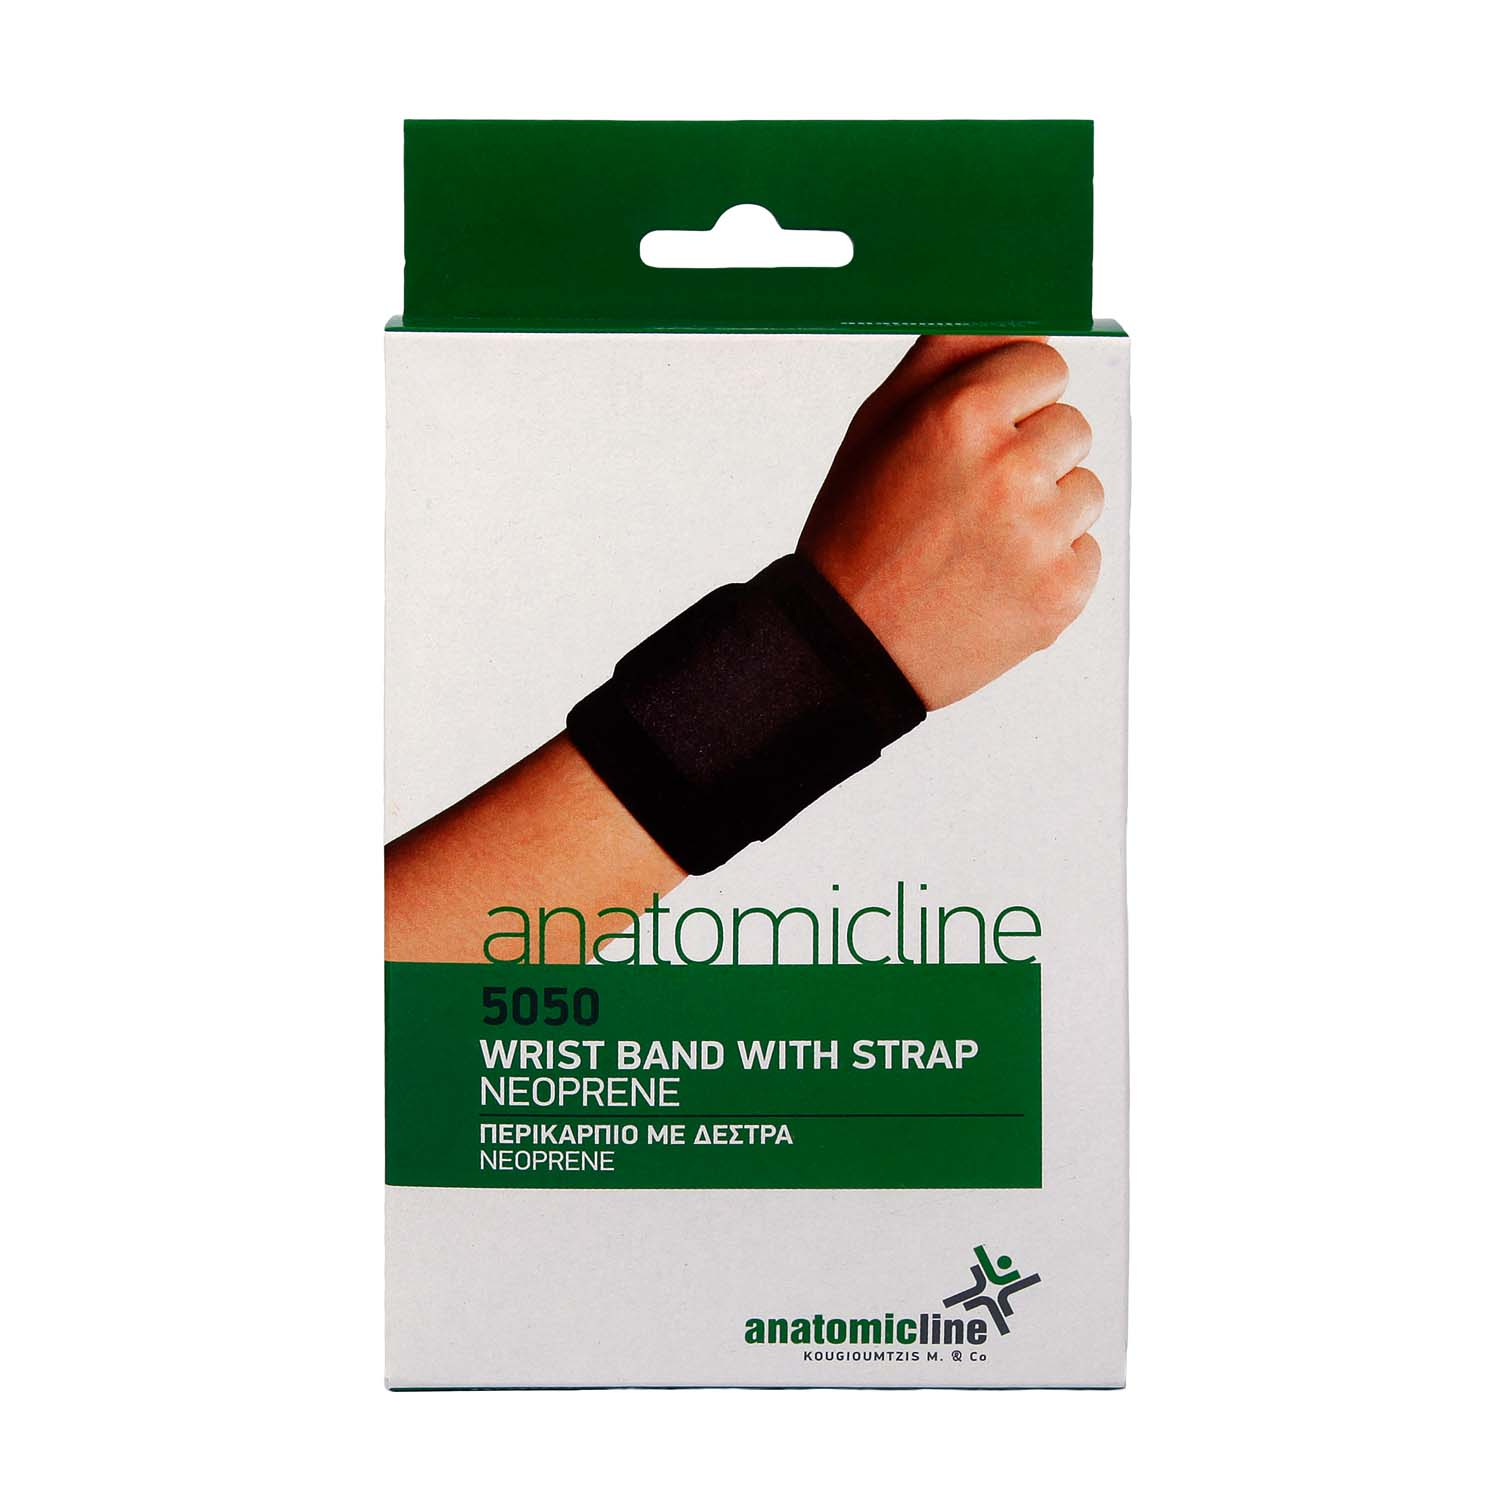 Wrist band with strap - Neoprene